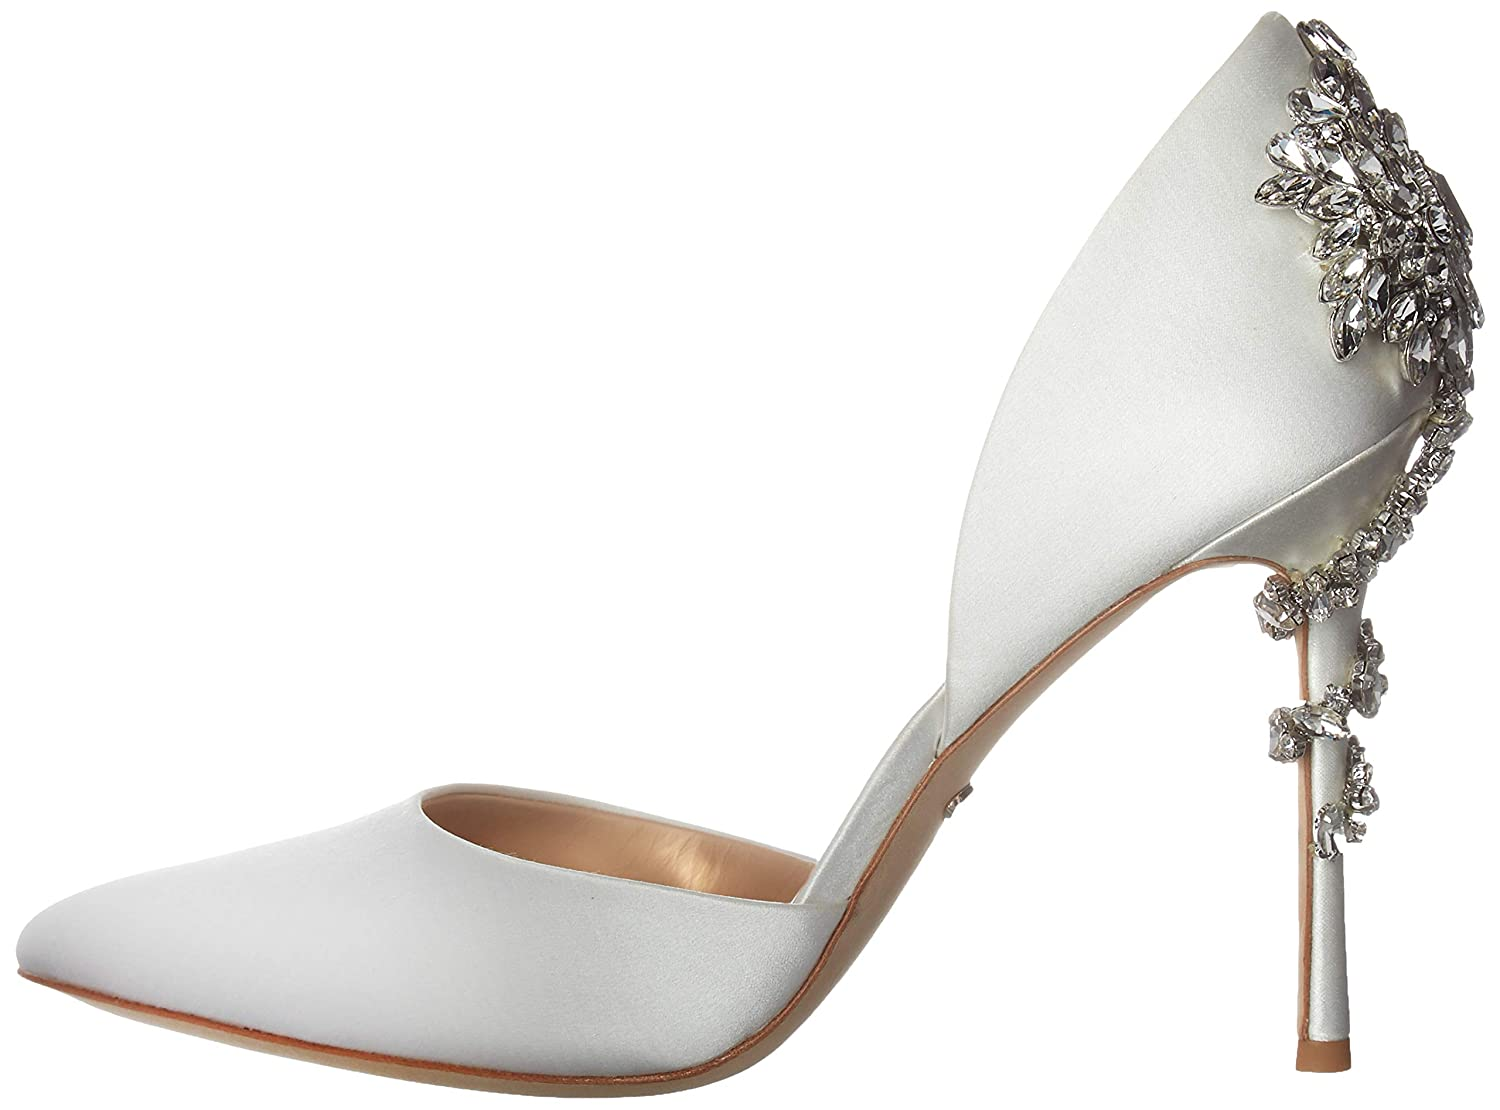 Badgley Mischka Womens Vogue Pump